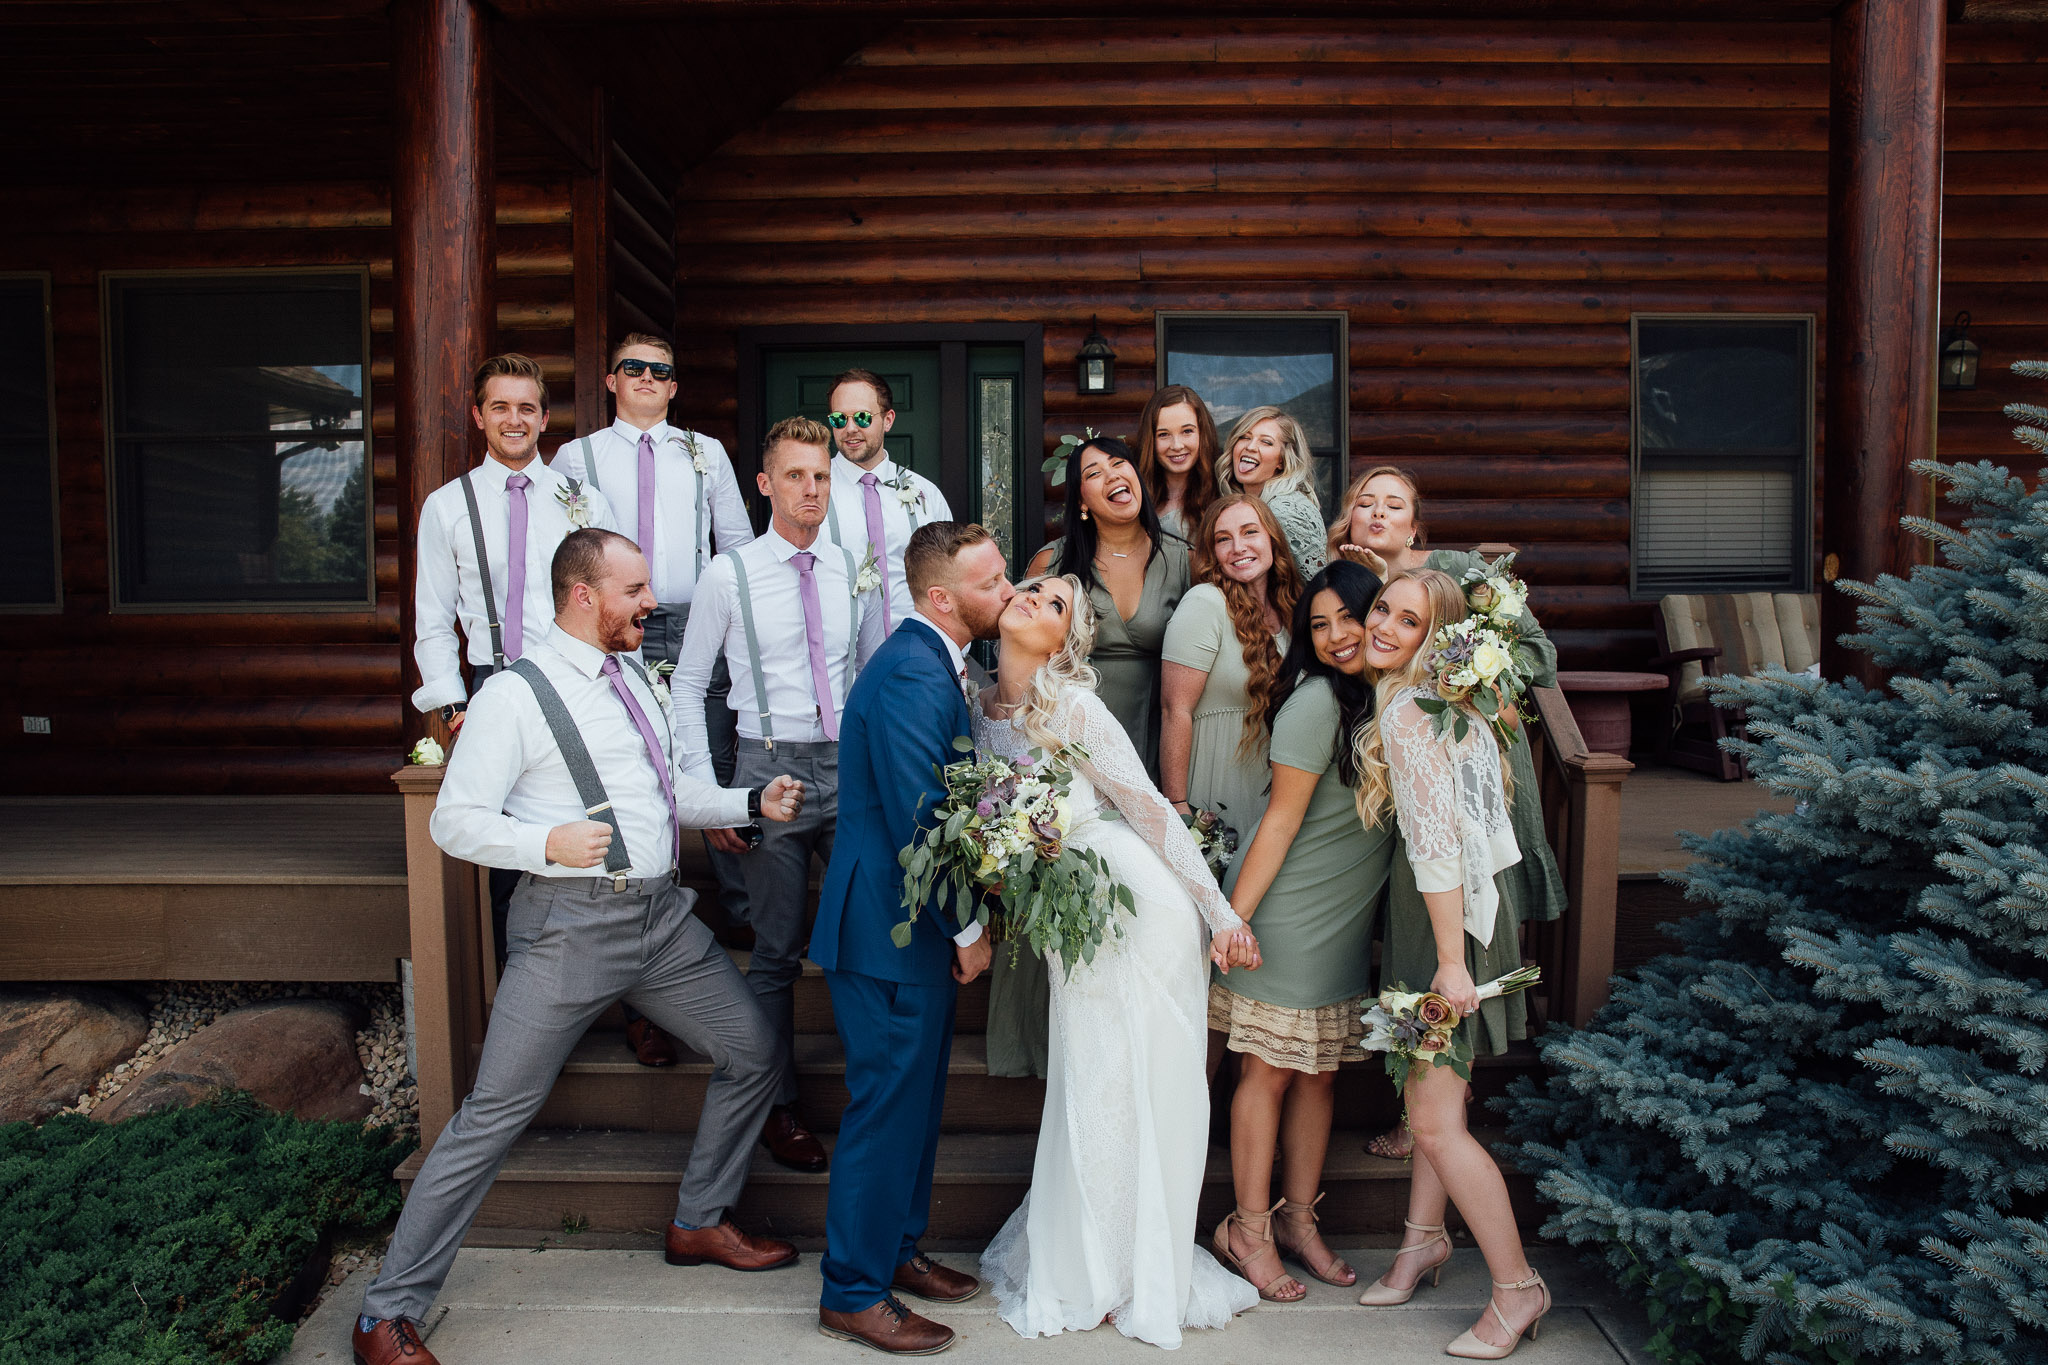 Wedding party poses for silly photo with Bride and groom